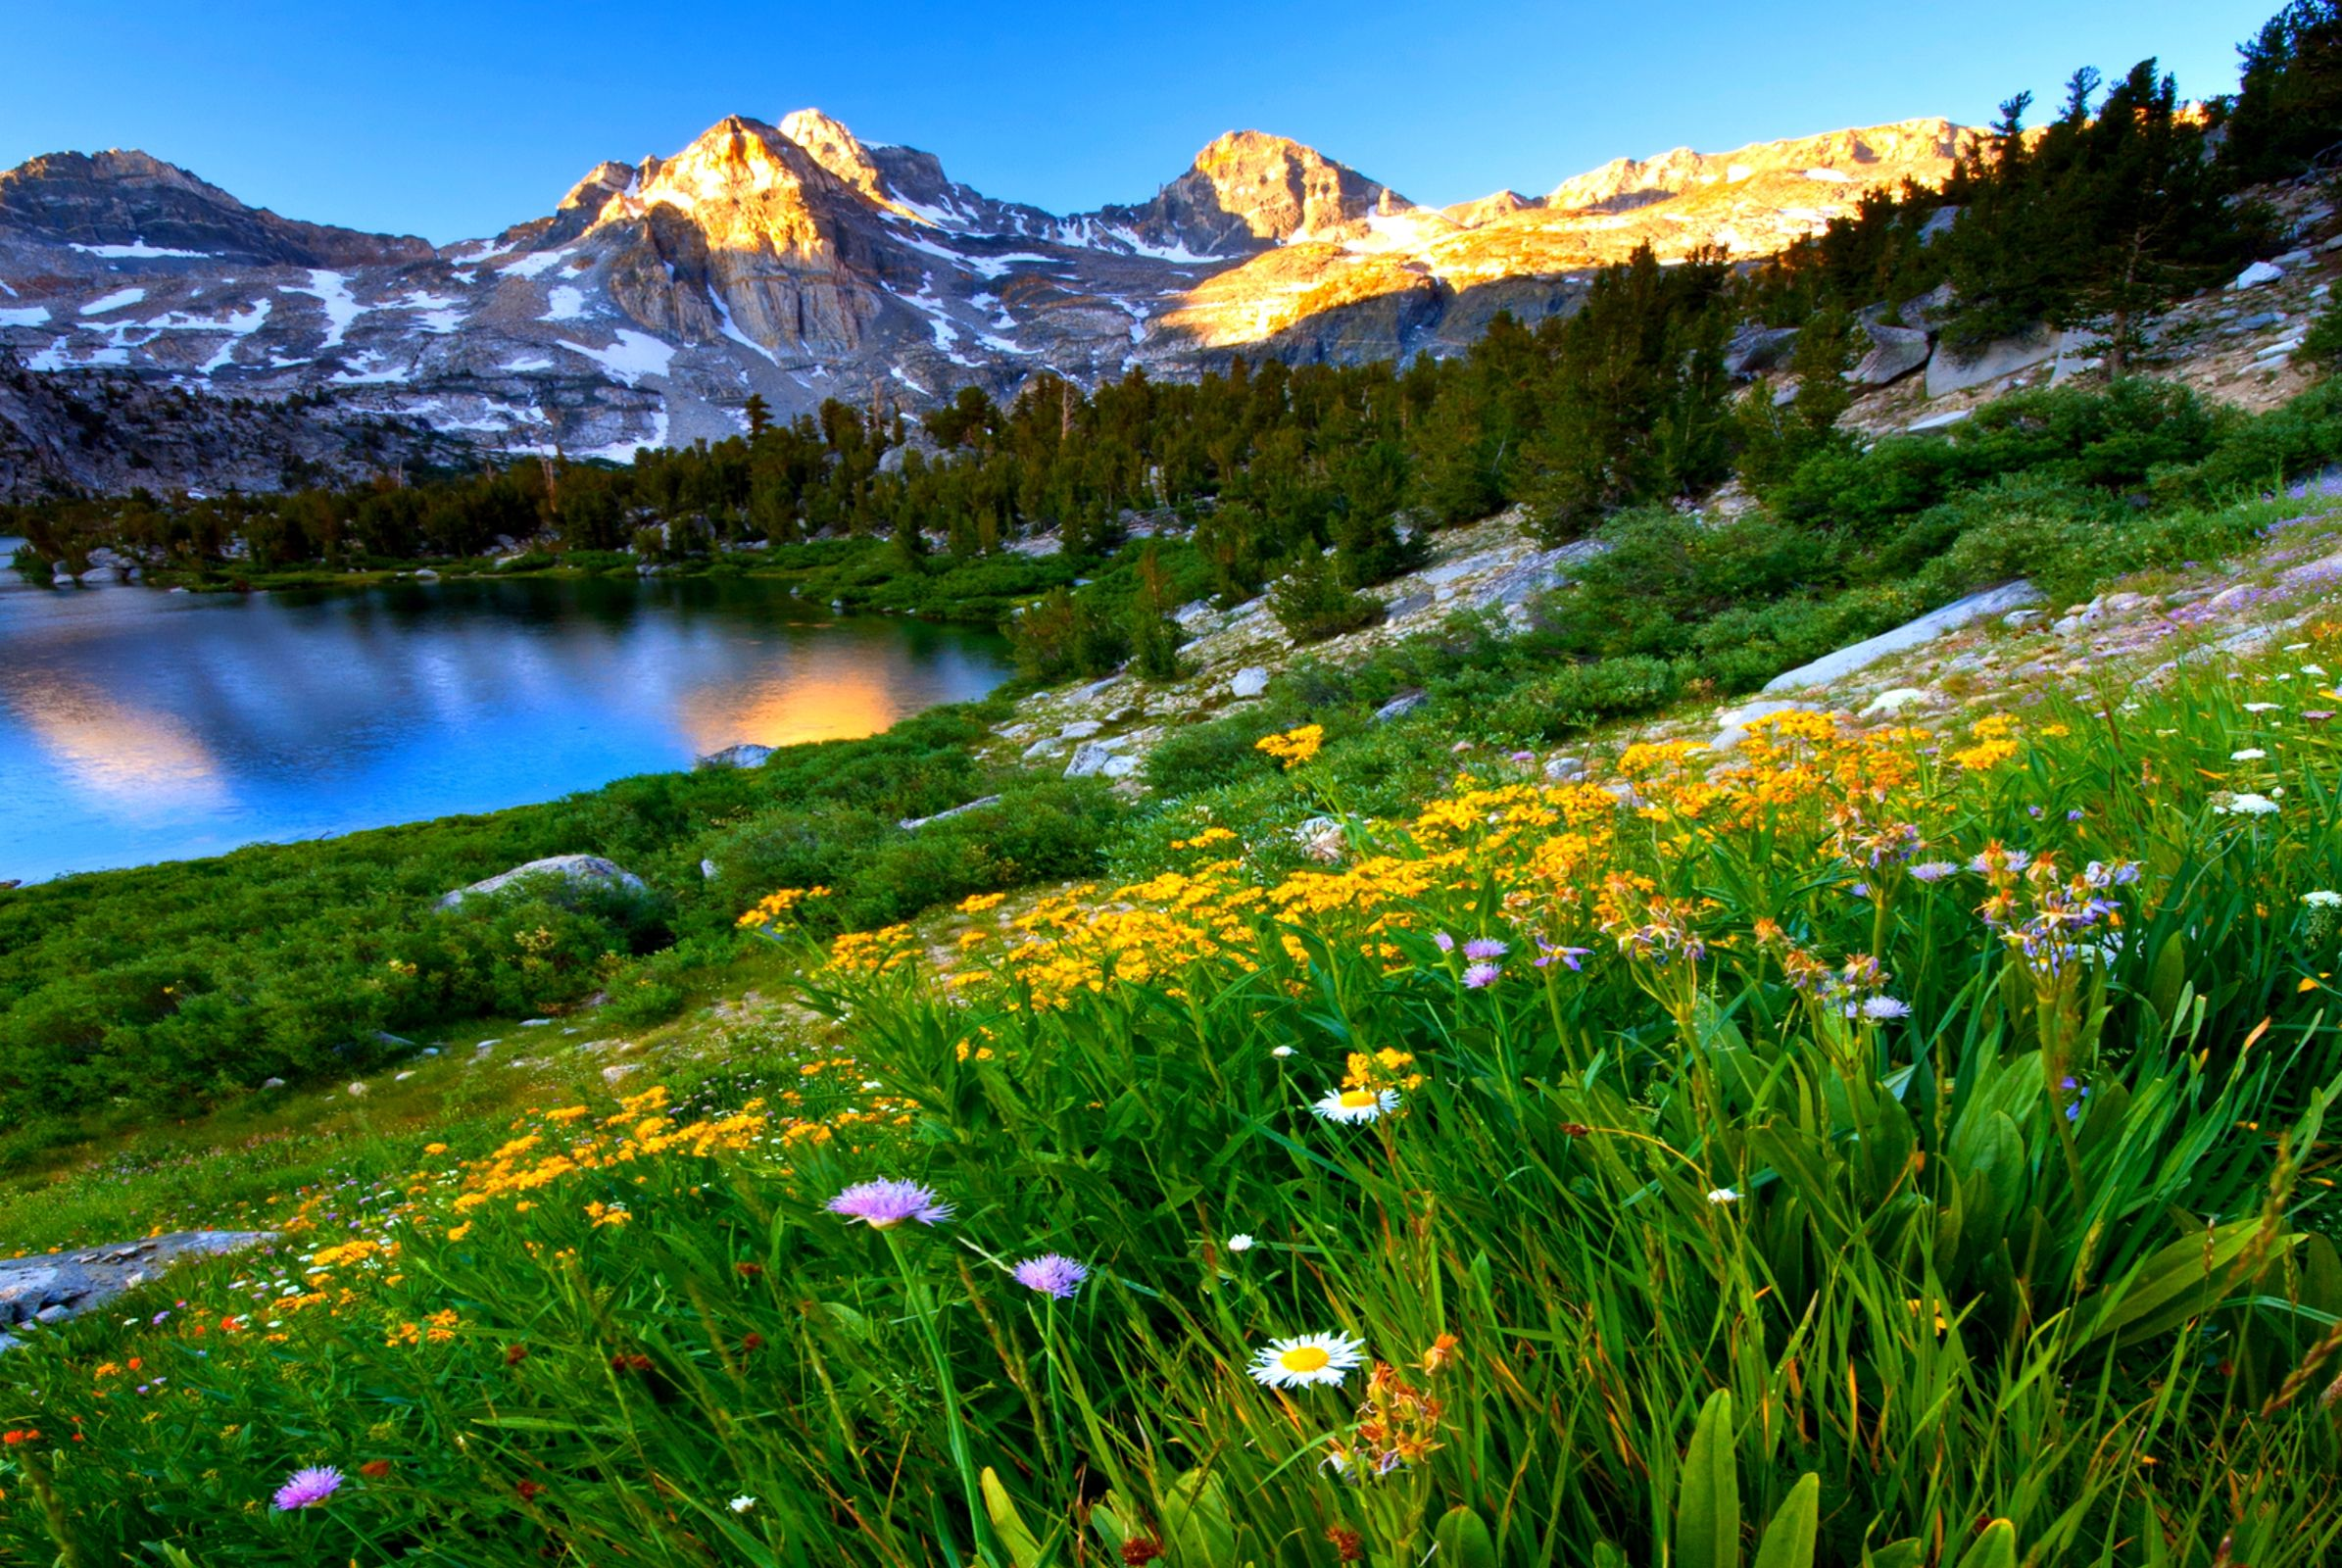 Earth Spring Hd Wallpaper Background Image Wallpaper Cart Mountain Landscape Spring Wallpaper Spring Pictures